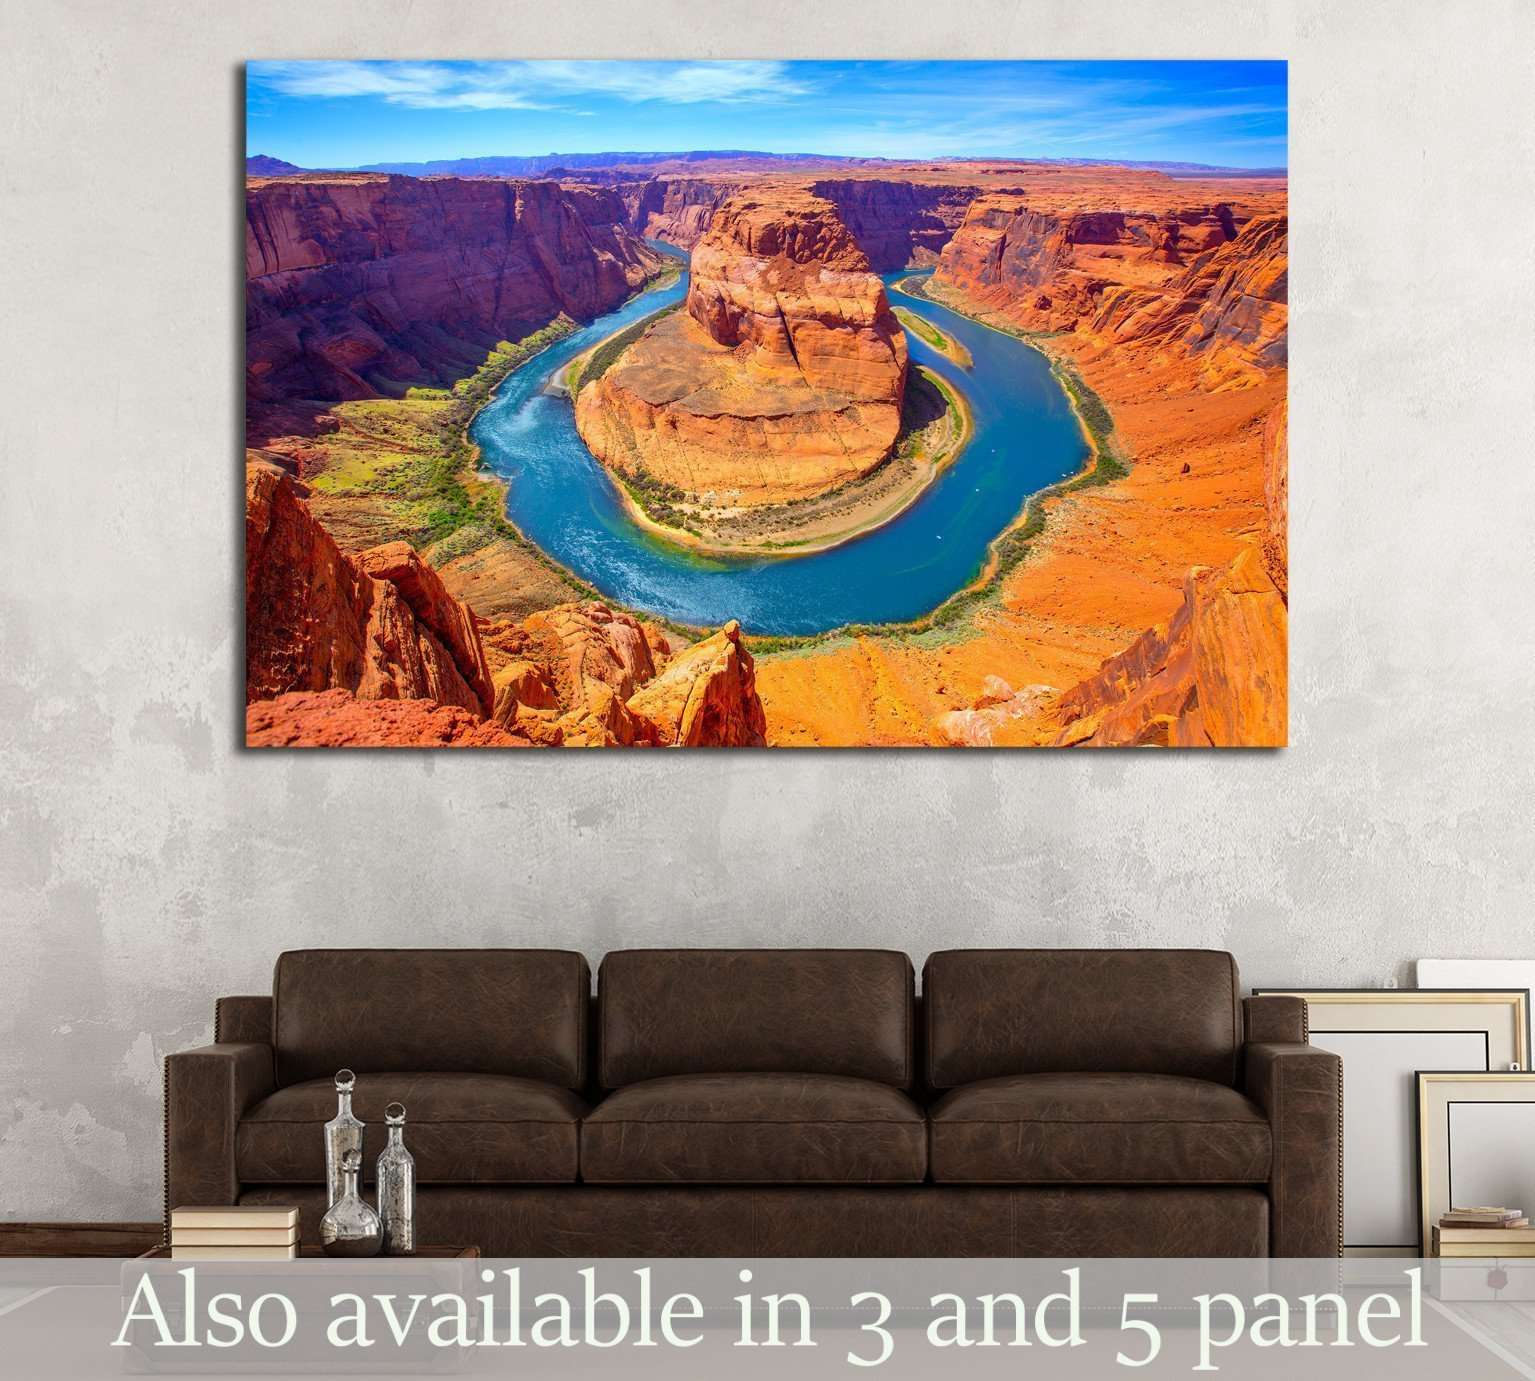 Arizona Horseshoe Bend meander of Colorado River in Glen Canyon №1979 - canvas print wall art by Zellart